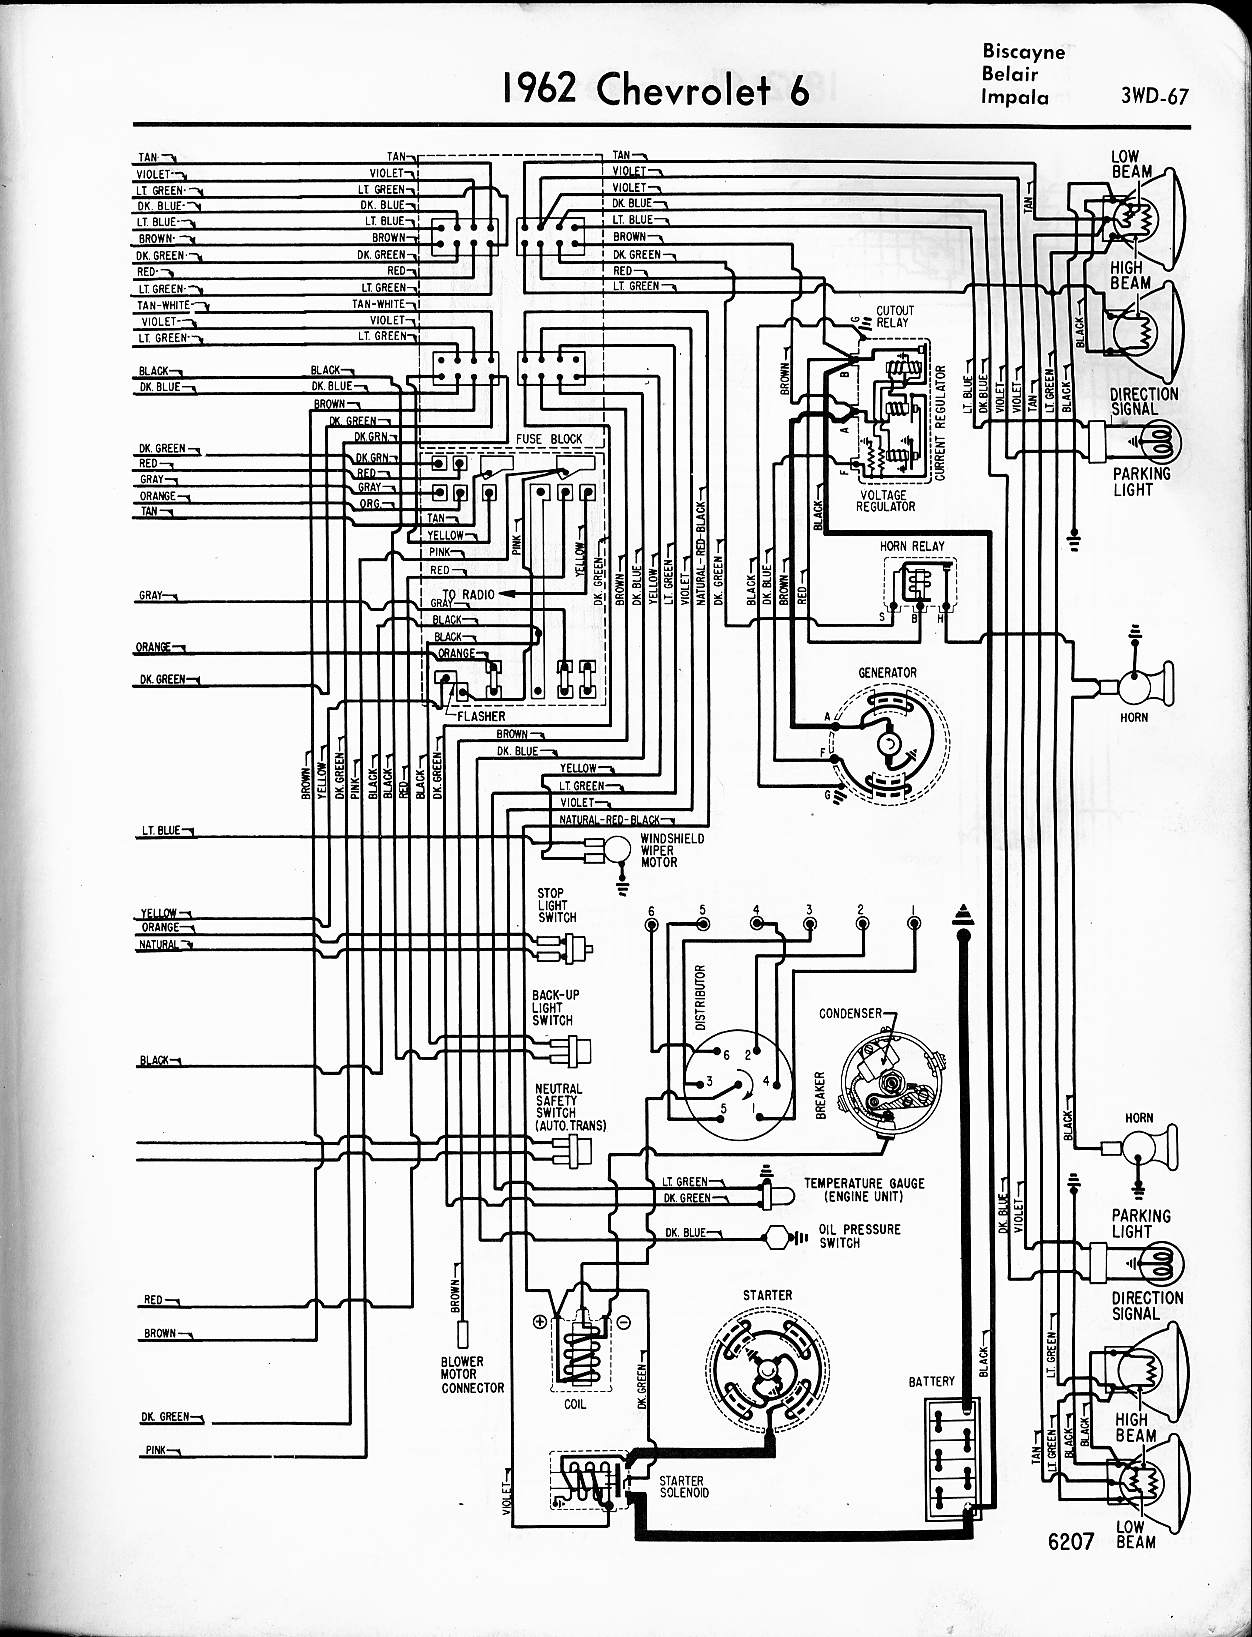 1969 impala fuse box wiring library 1966 Mustang Fuse Box Wiring Diagram 1962 impala wiring diagram just wiring data jeep cj5 wiring schematic 1969 impala wiring diagram schematic